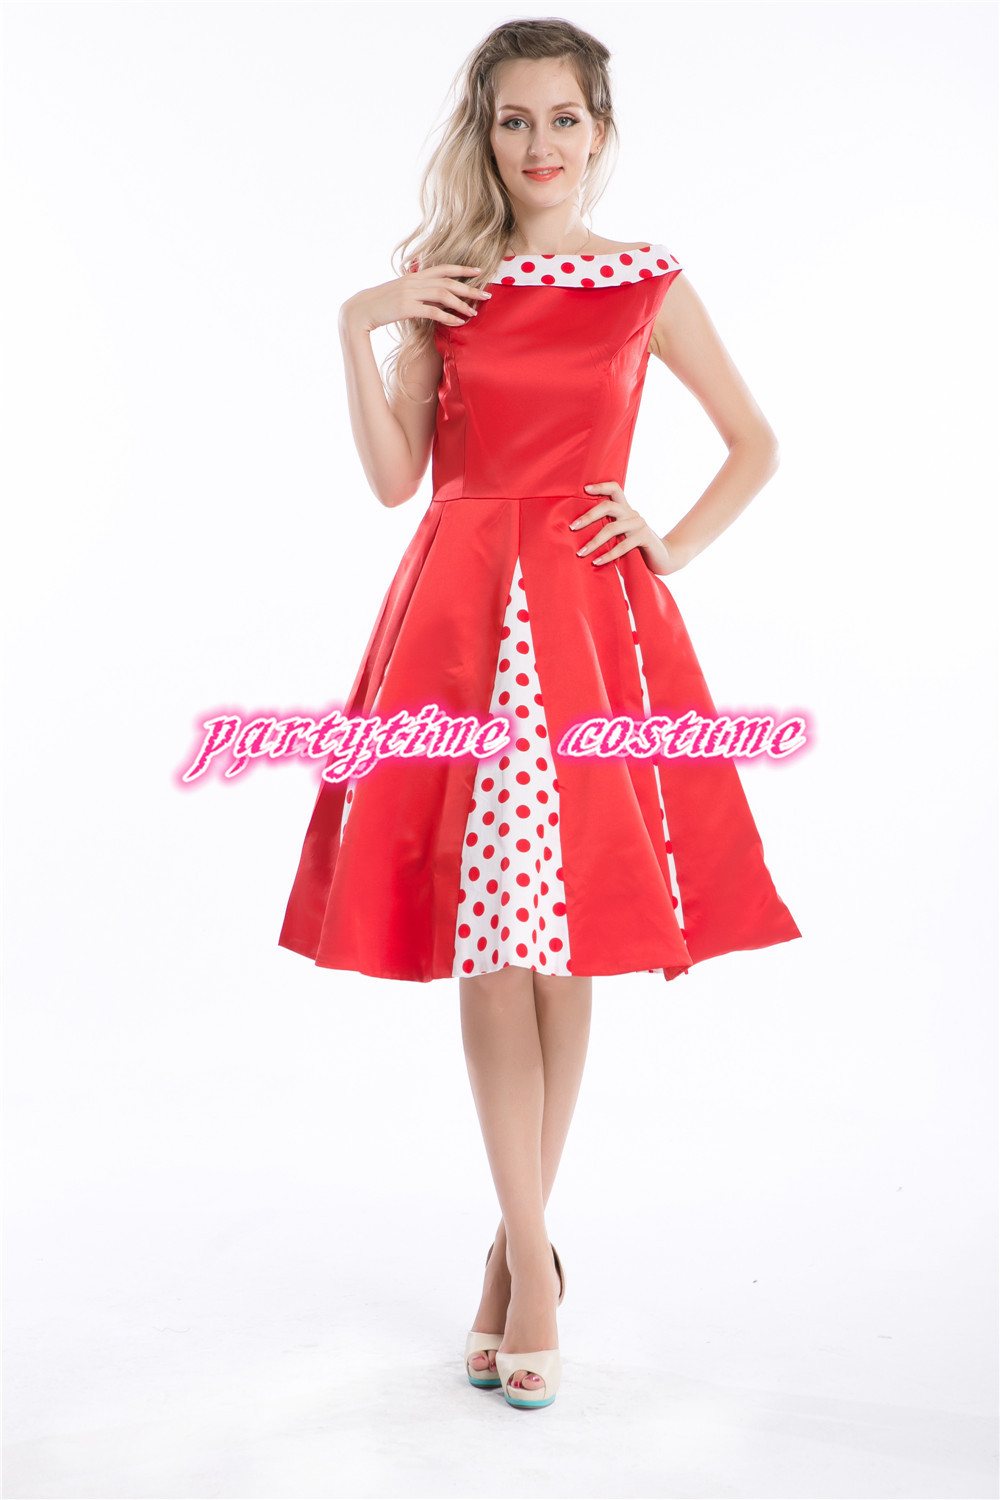 Vintage inspired clothing stores